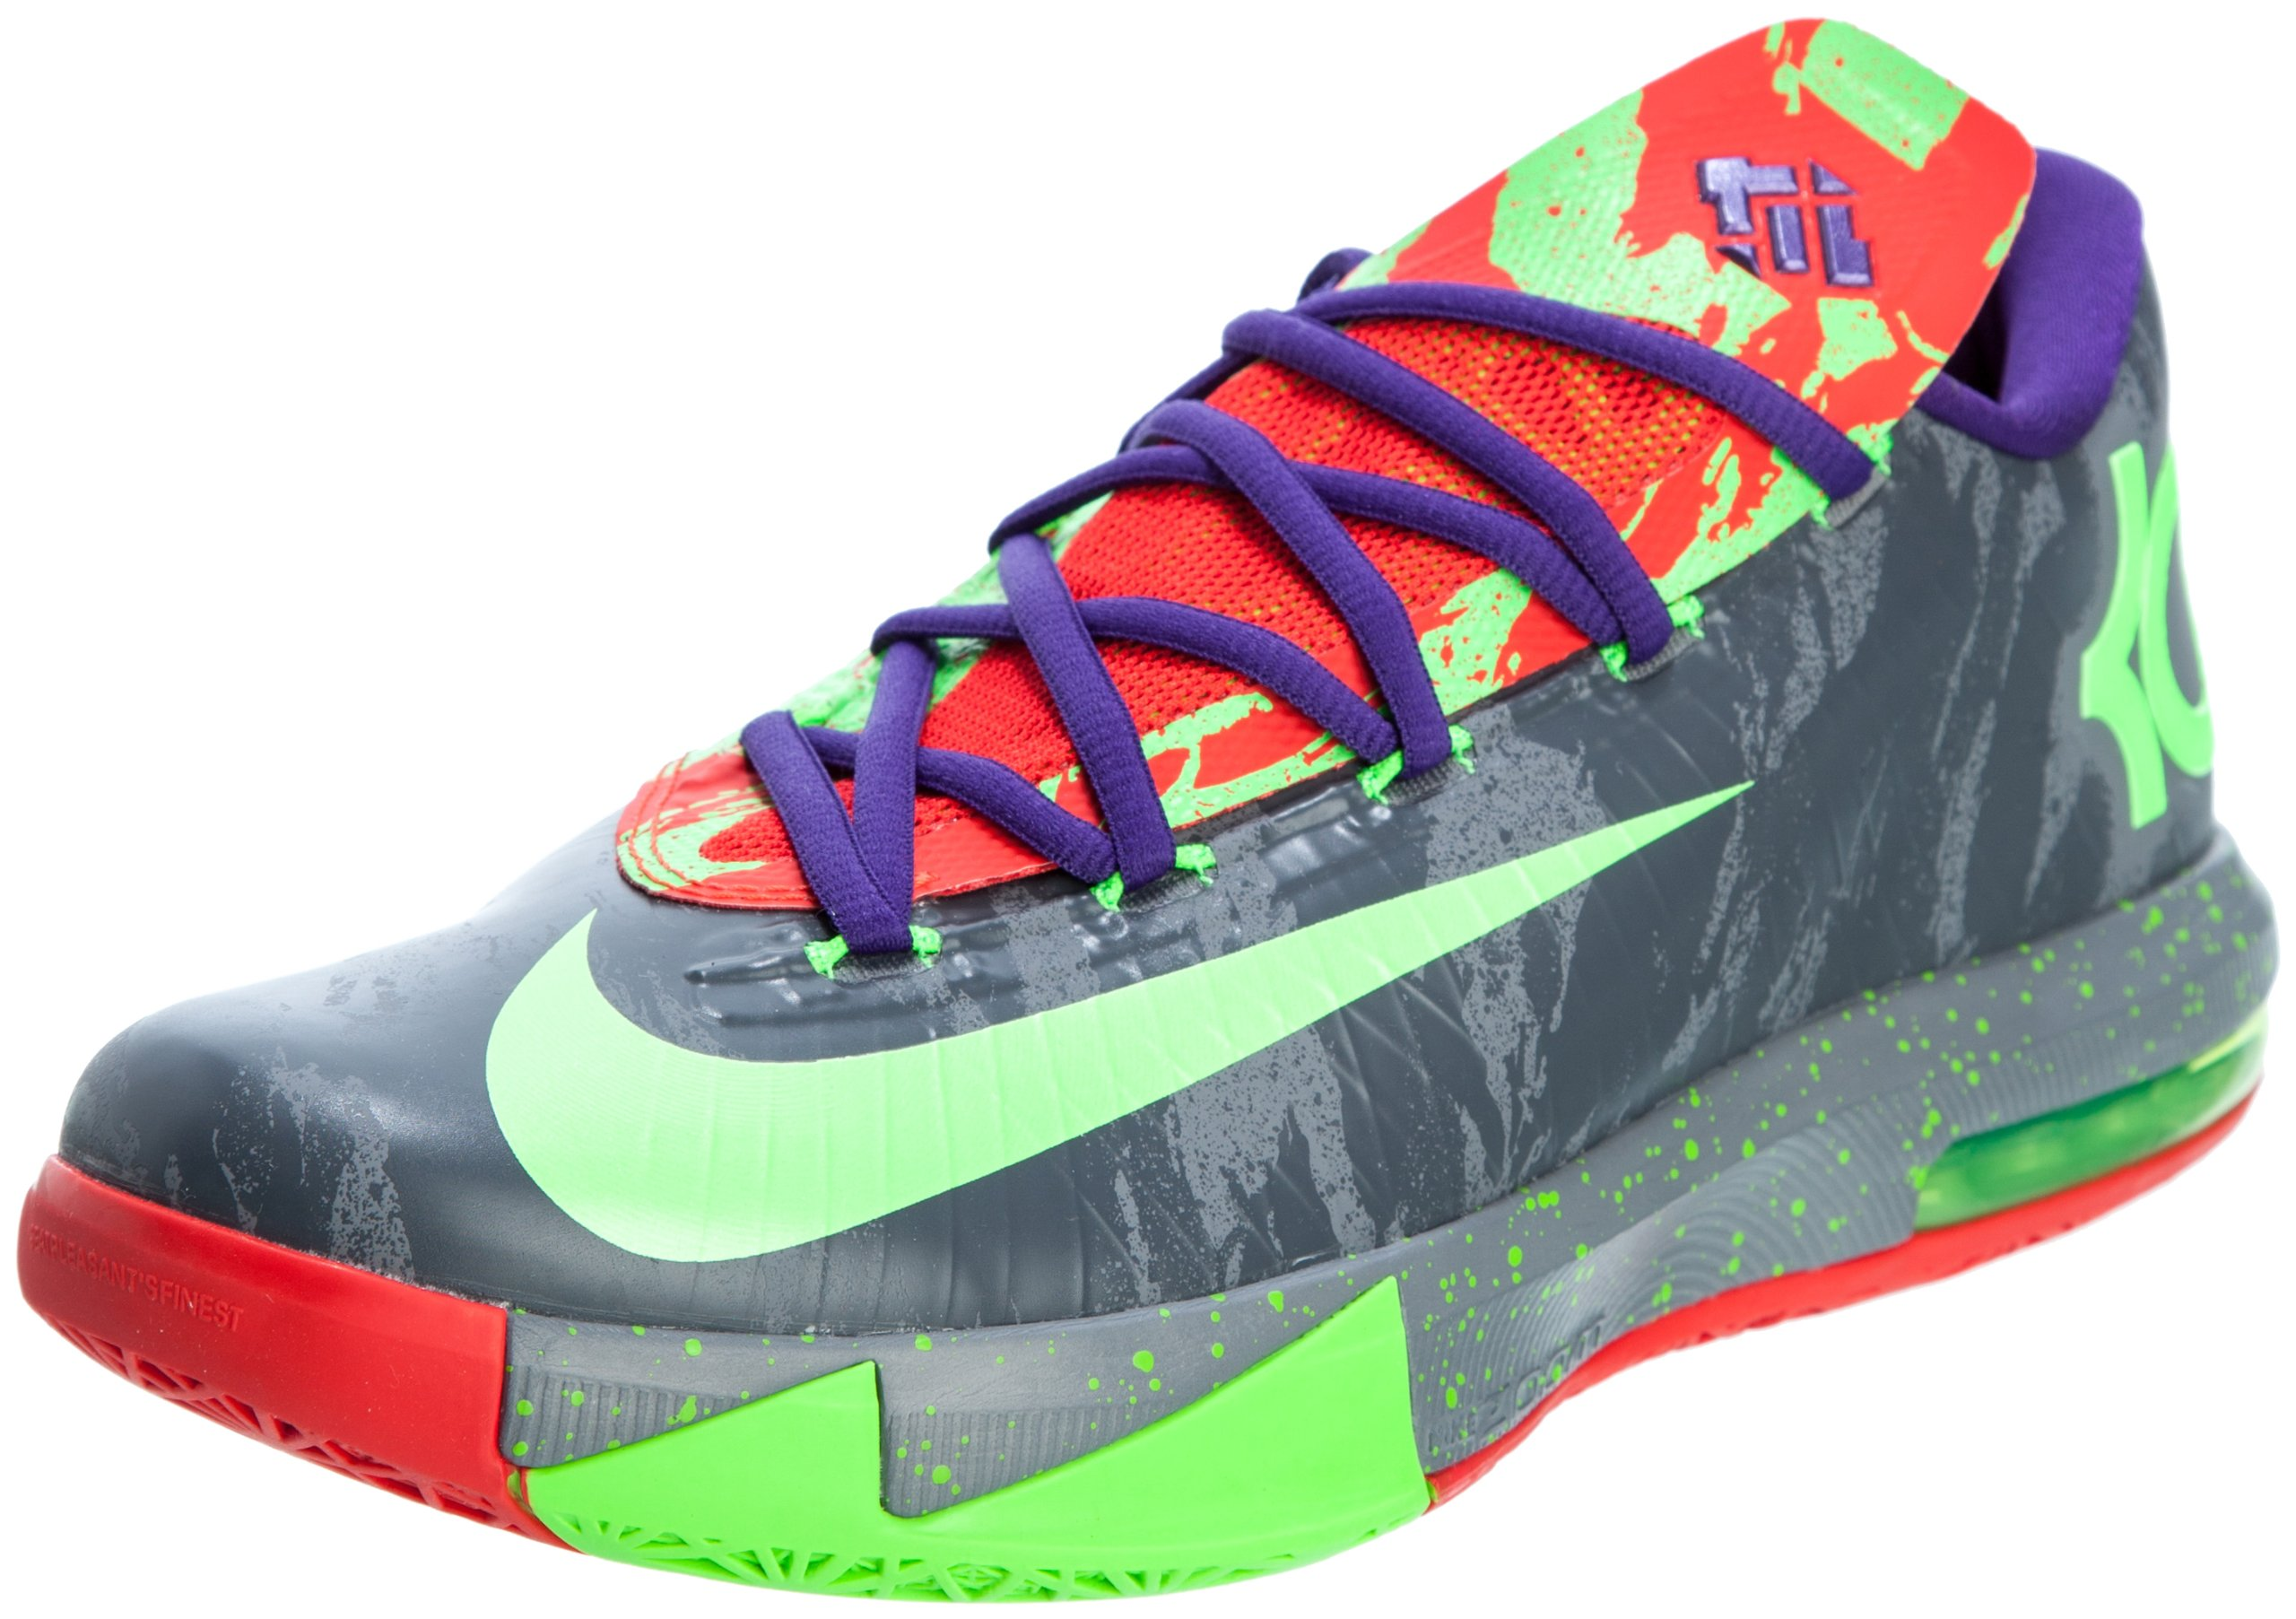 NIKE KD VI Kevin Durant Basketball Shoes 599424-008 (USM 11) by NIKE (Image #1)